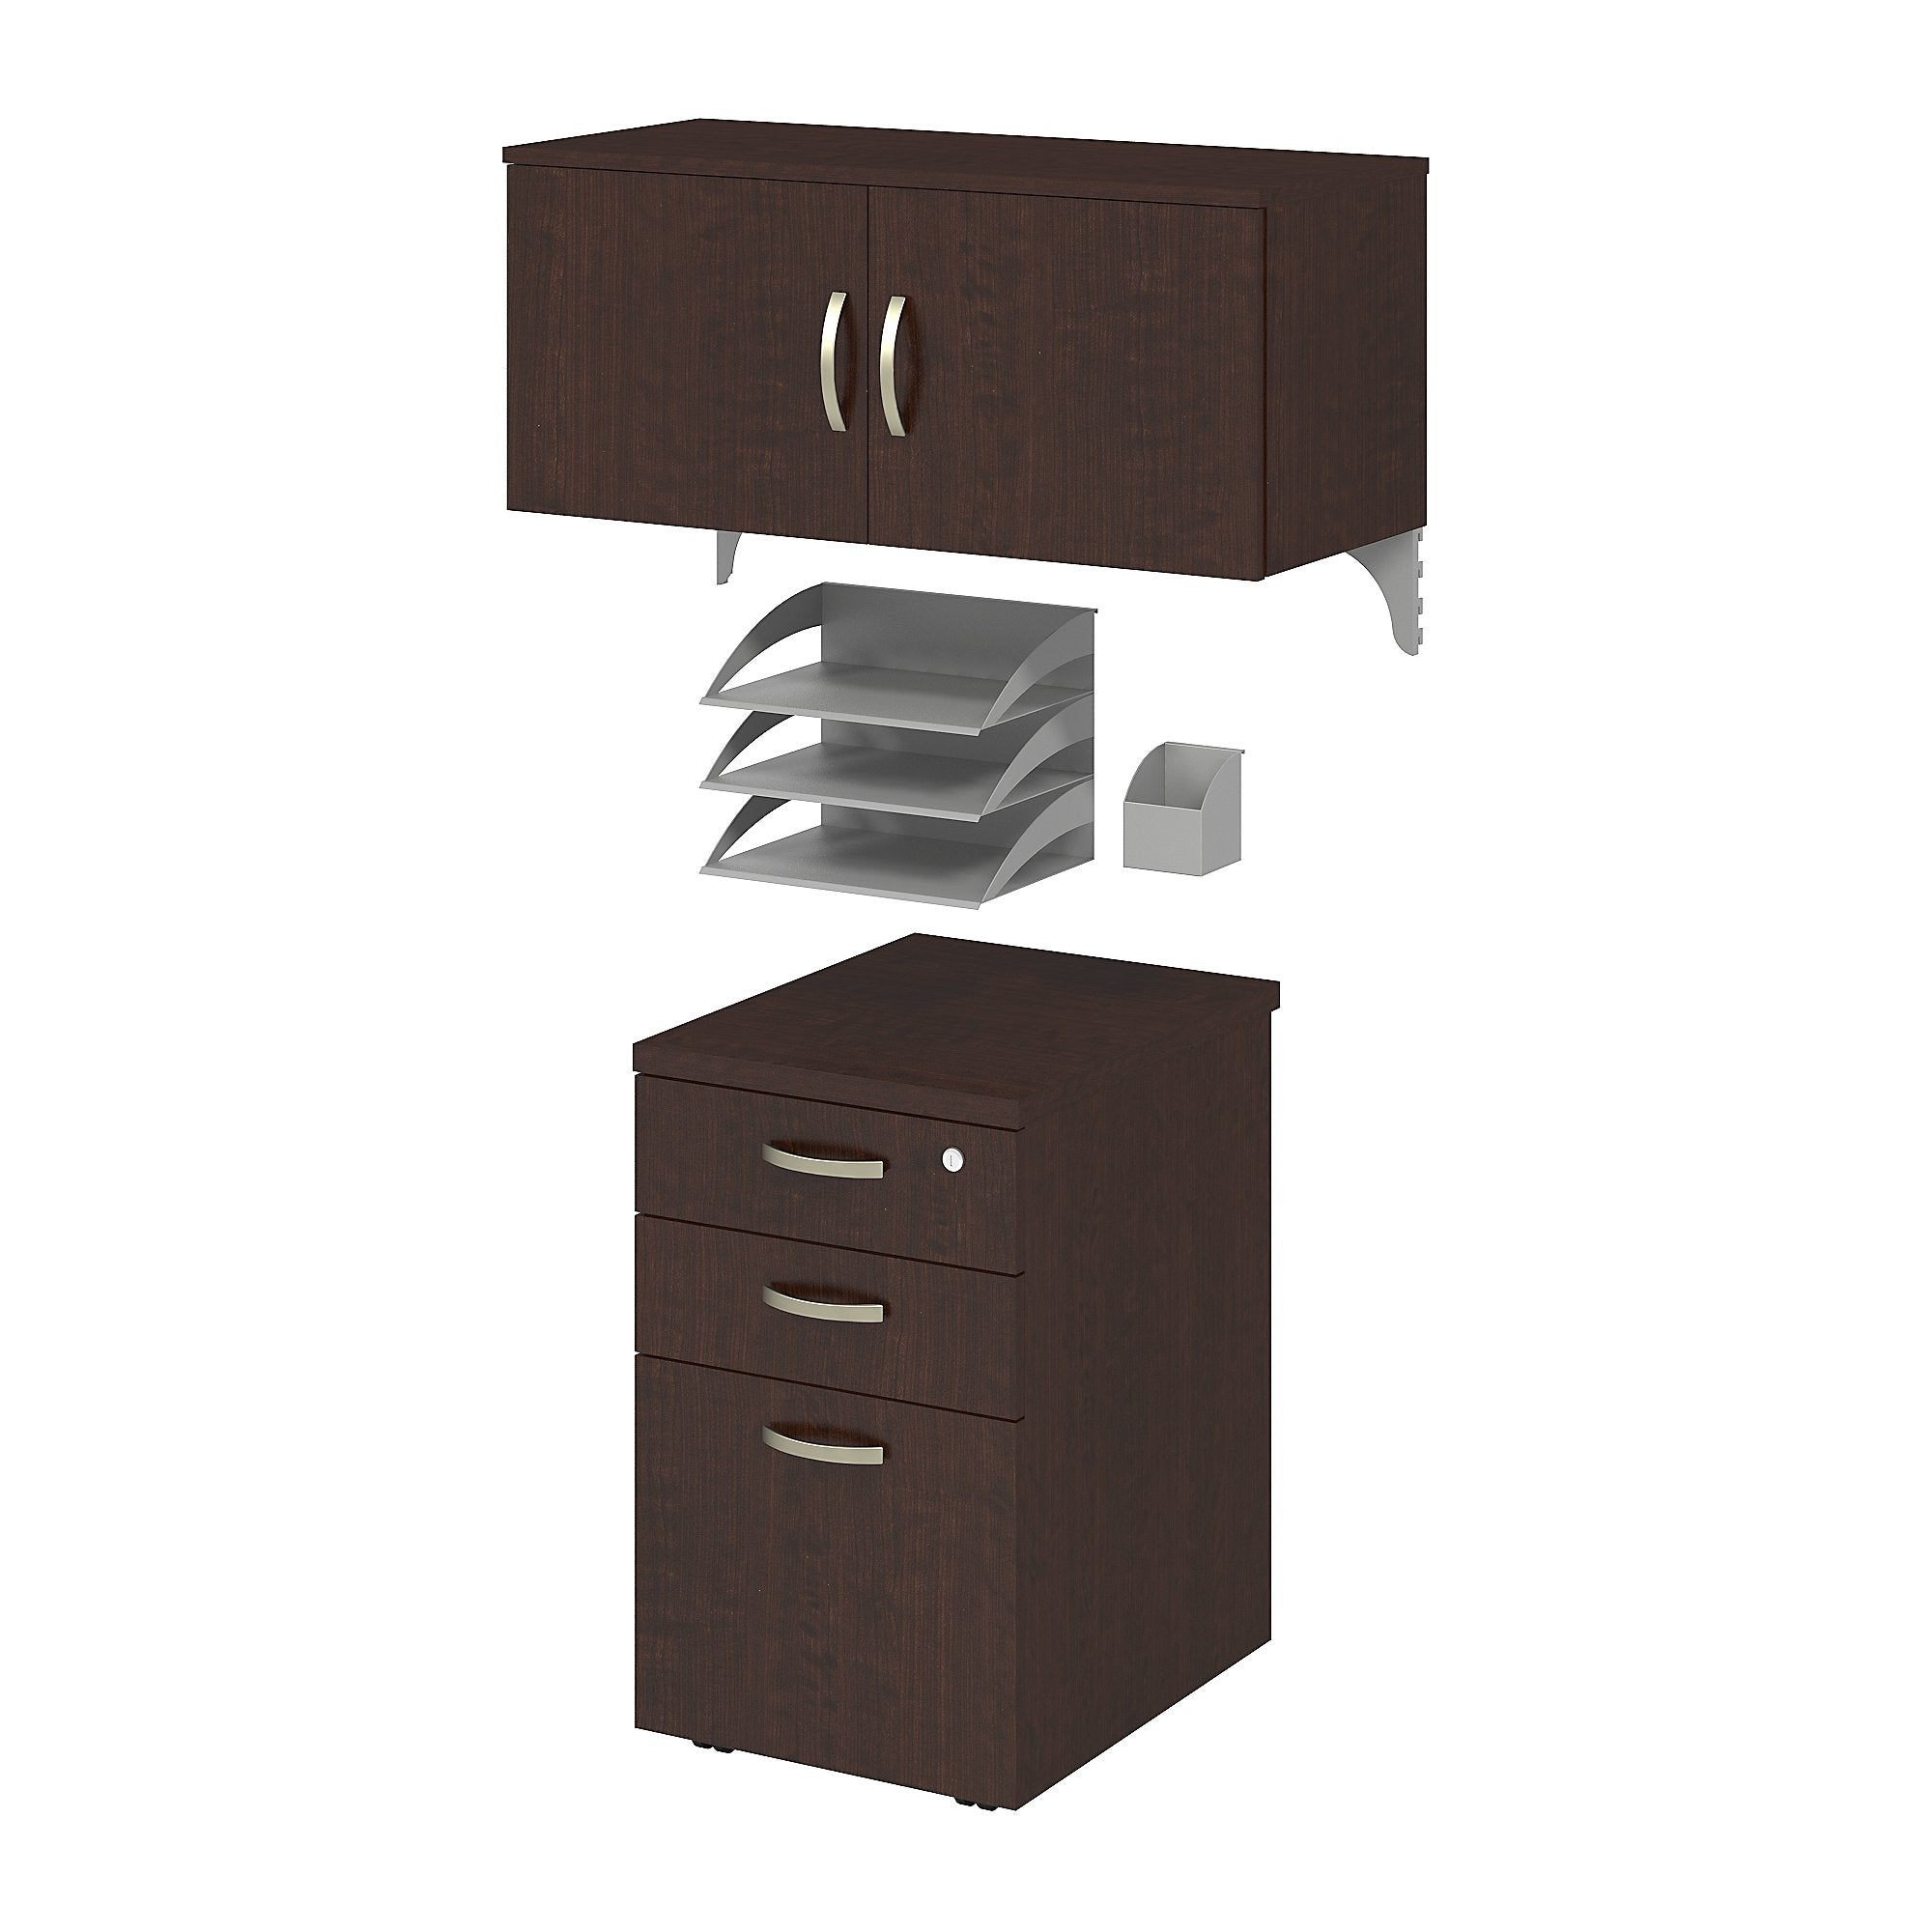 Bush Business Furniture Mocha Cherry Office in an Hour Storage and Accessory Kit